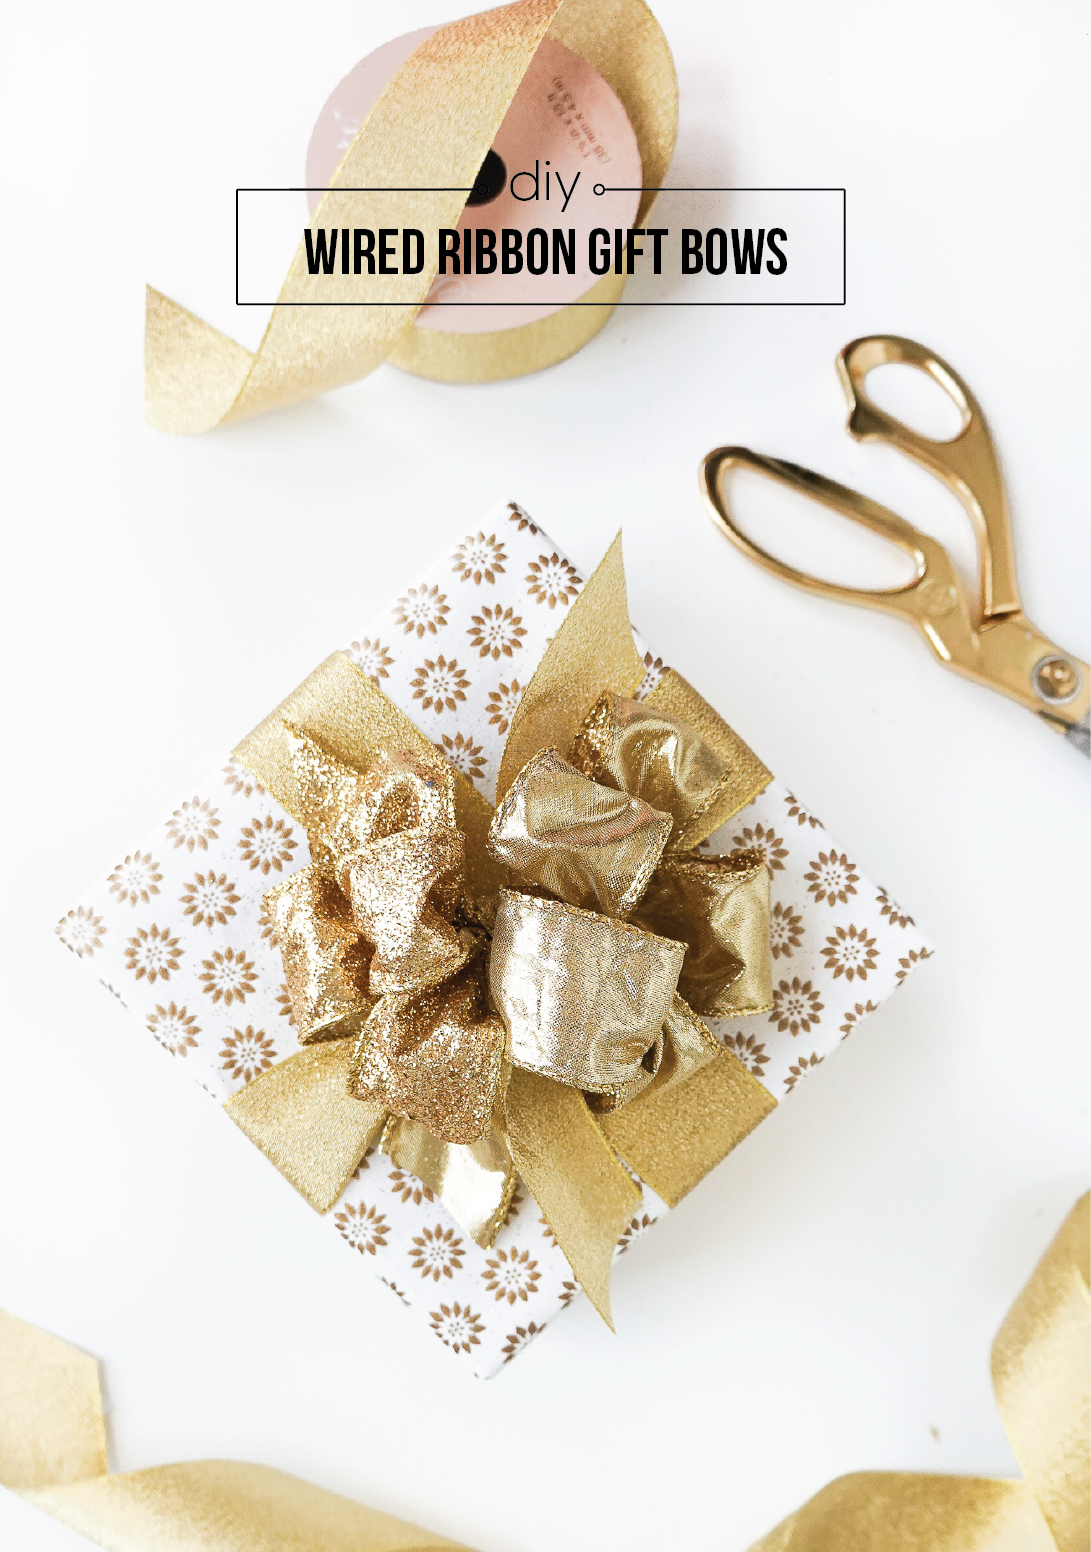 How to Tie the Perfect Ribbon Gift Bow (Video!) - Francois et Moi